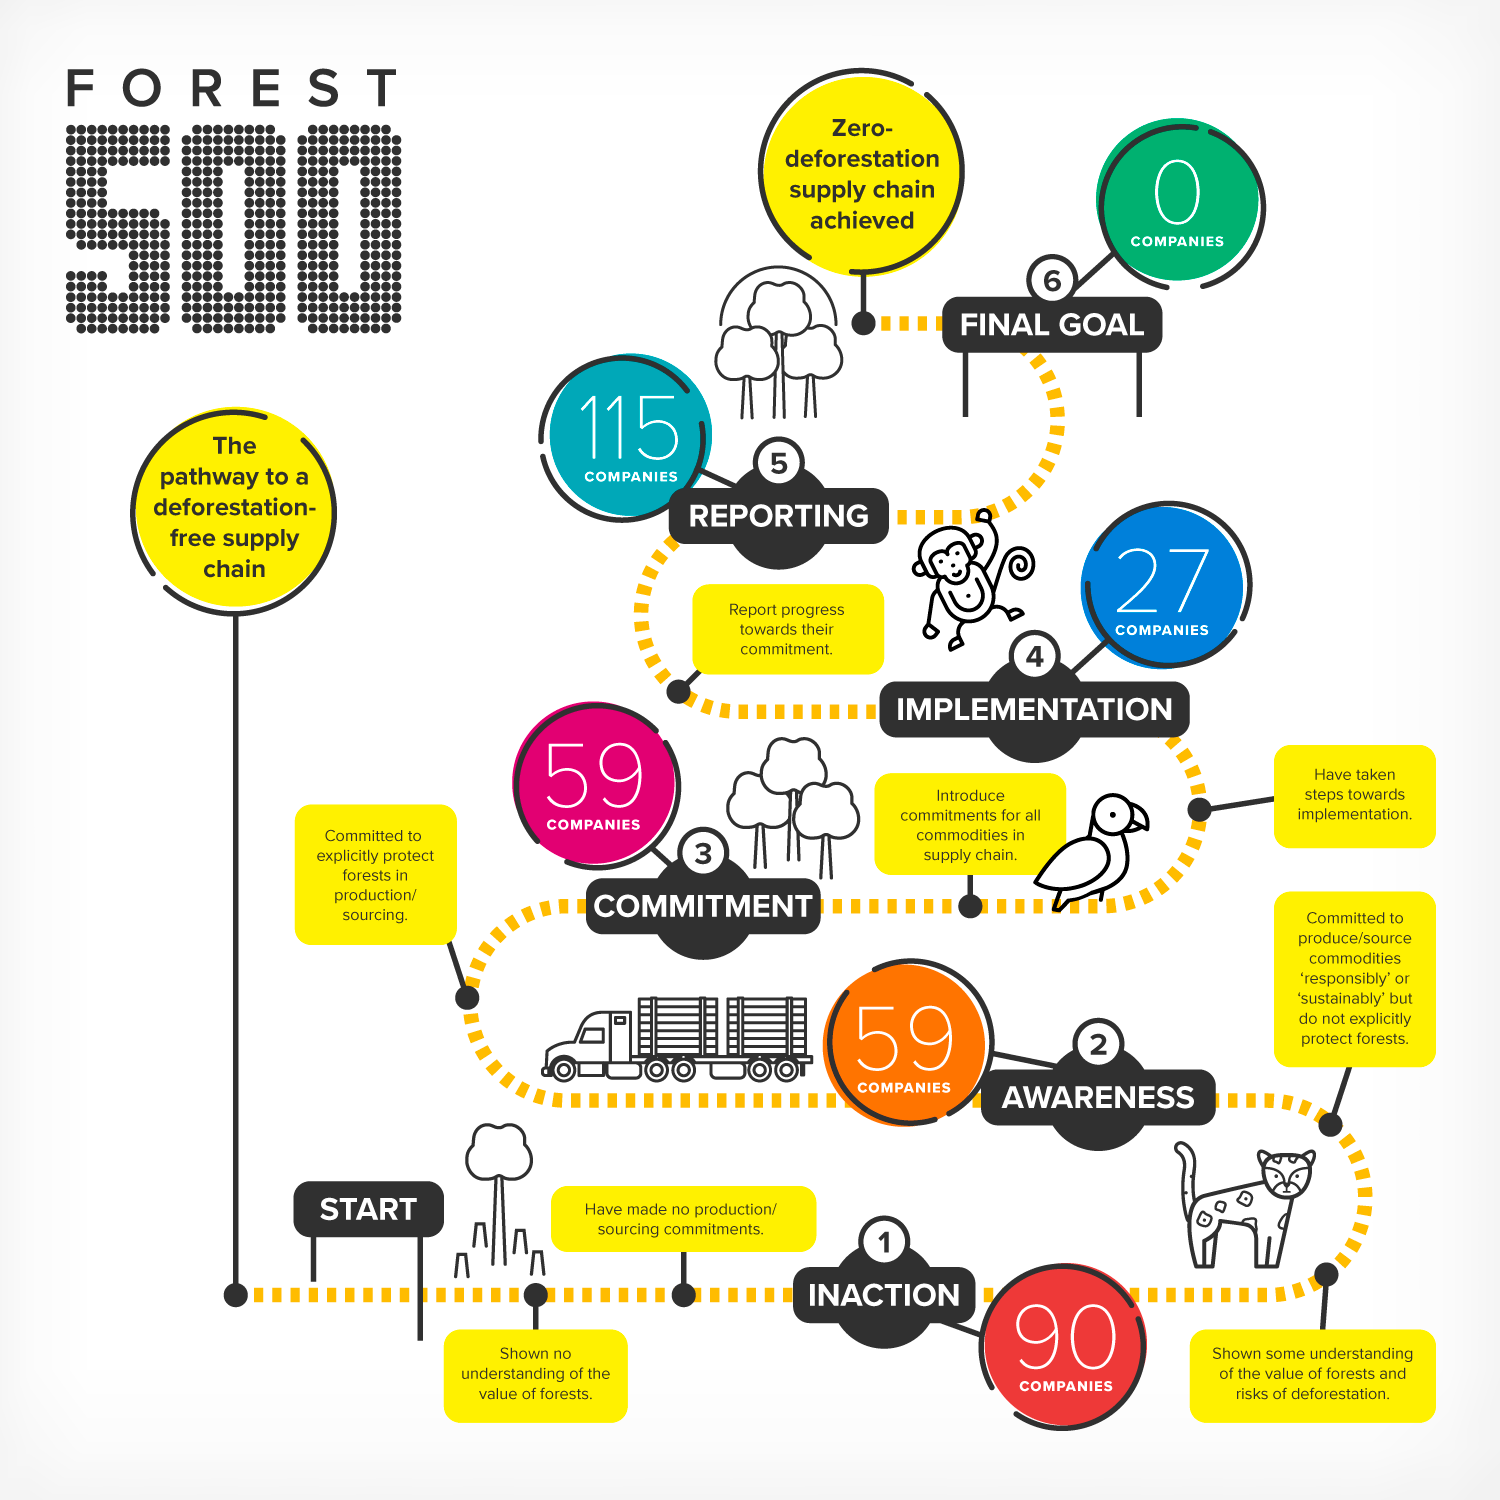 Infographic shows pathway from no awareness through to commitments and implementation to reach the zero deforestation goal